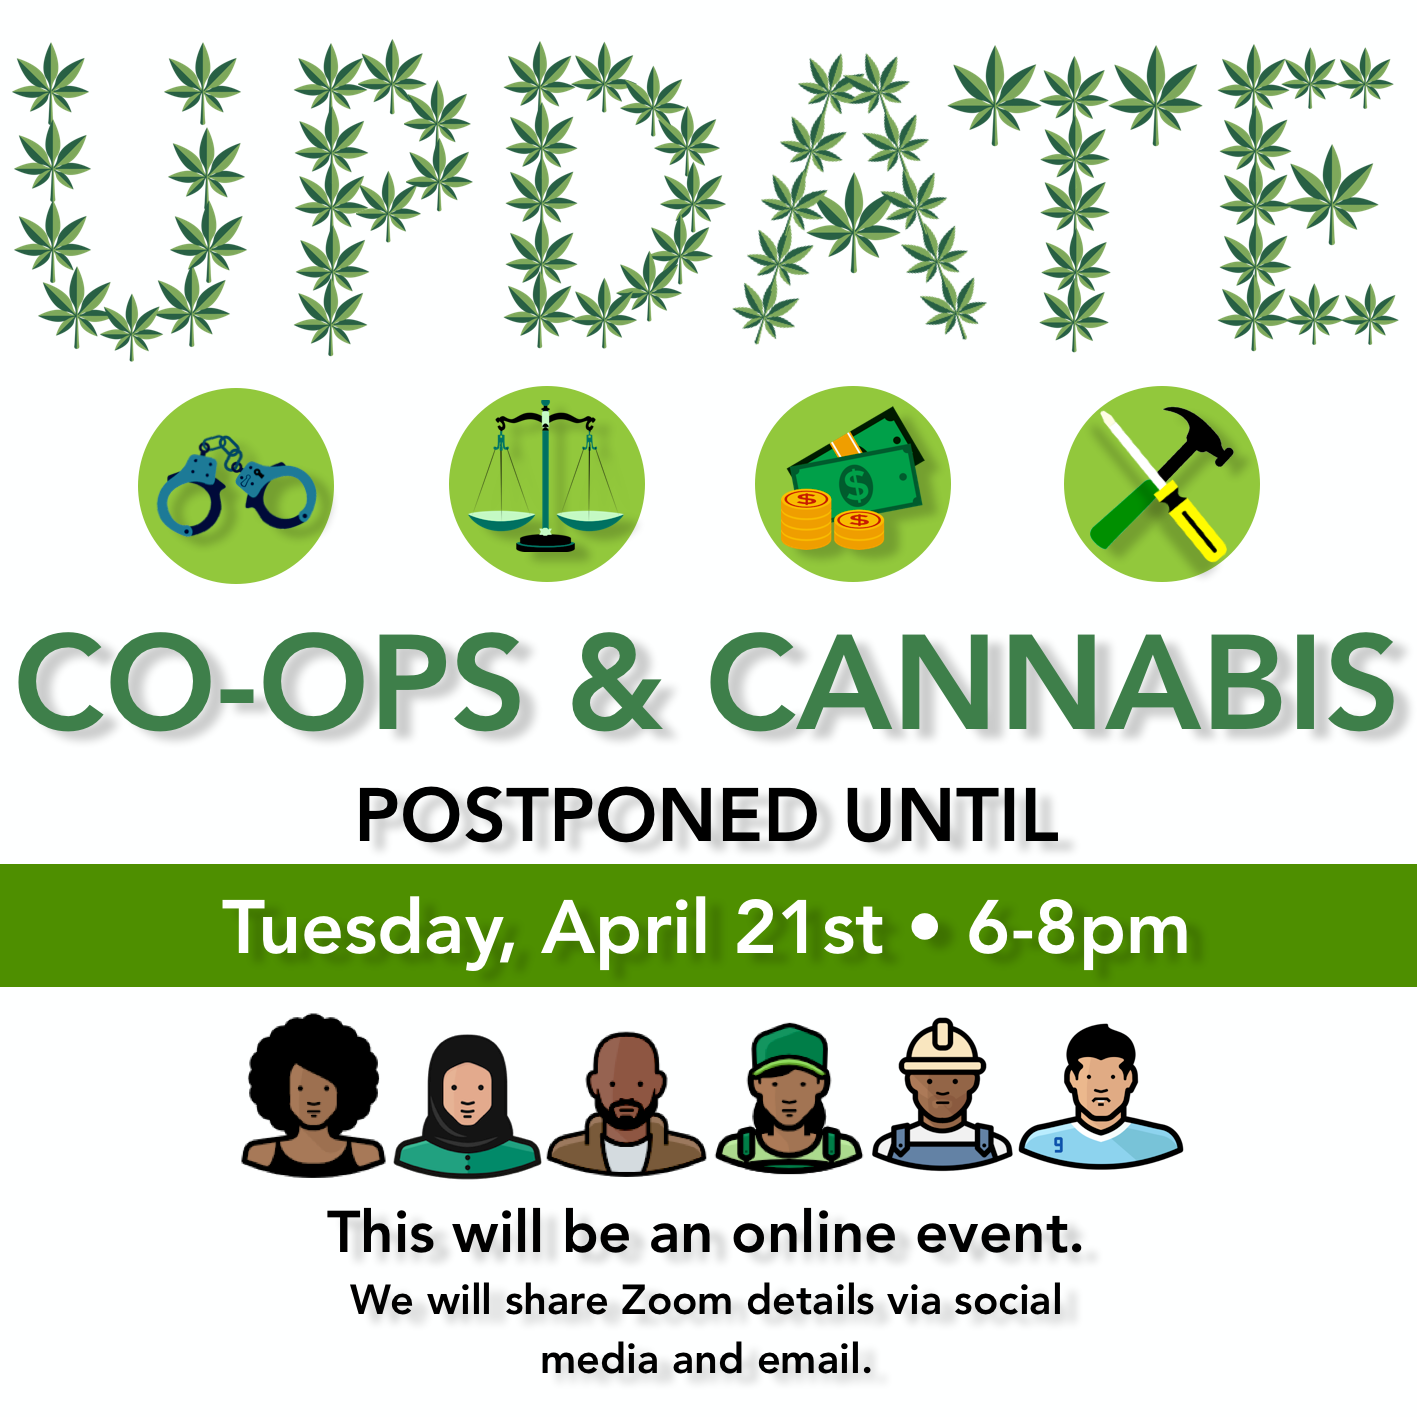 co-ops___cannabis_postponement_UPDATE.png